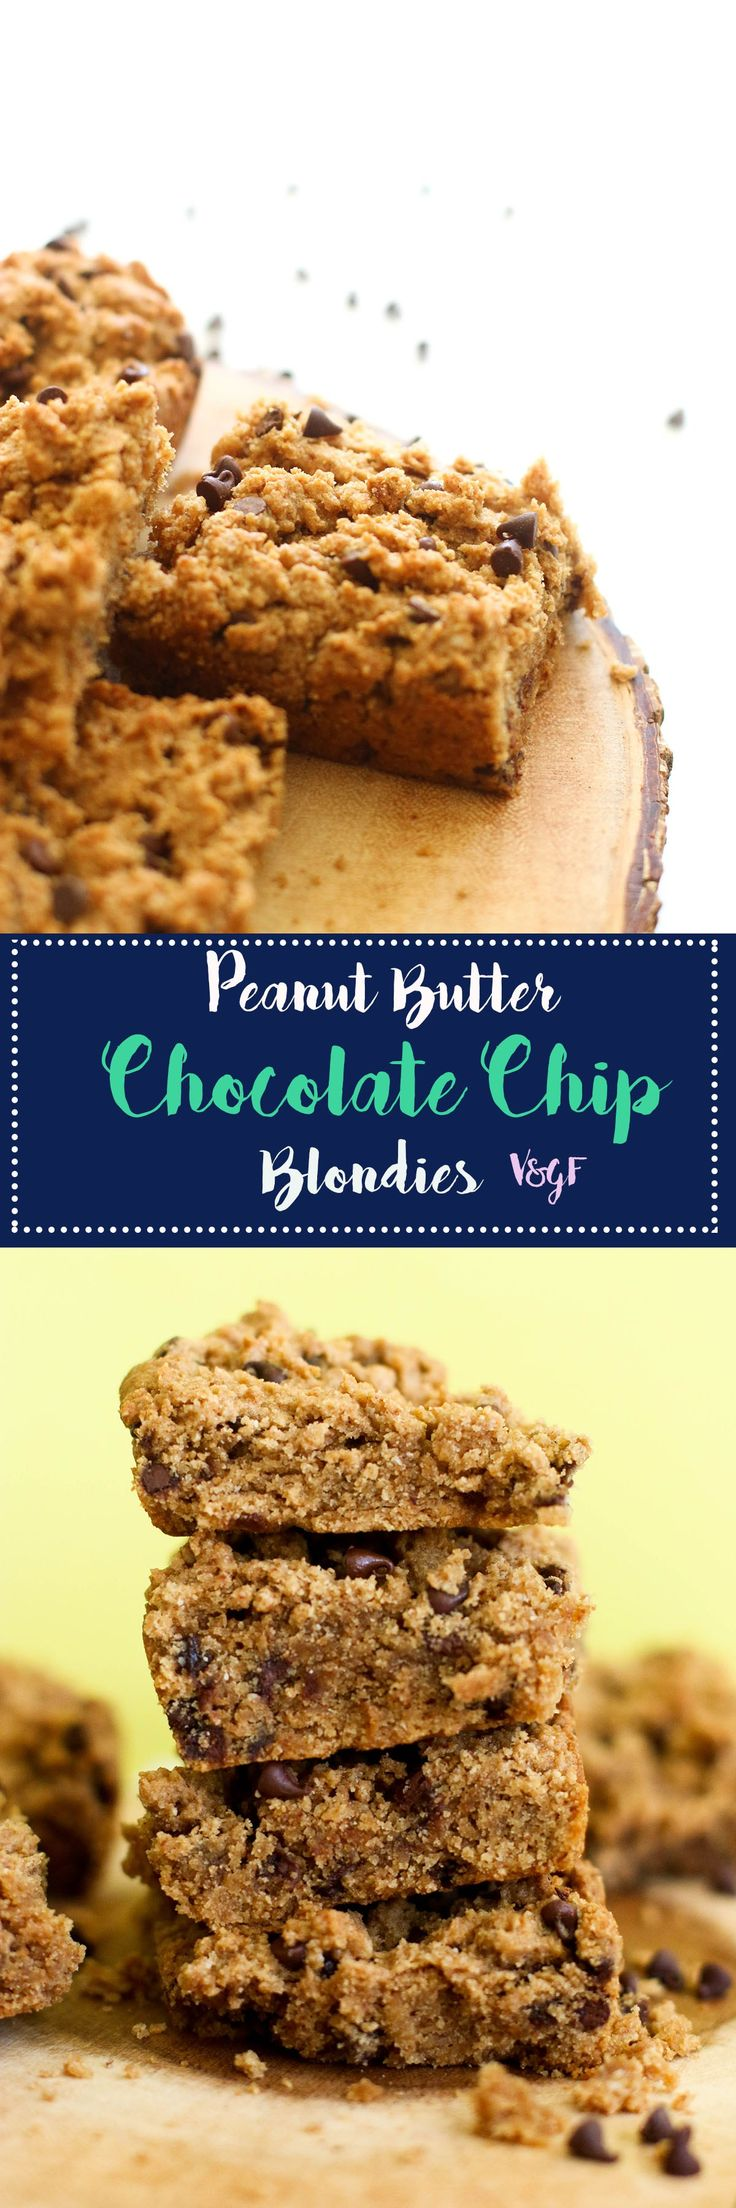 These peanut butter chocolate chip blondies are vegan, gluten free, refined sugar free, and full of flavor. They make for a great dessert or even better afternoon pick me up!